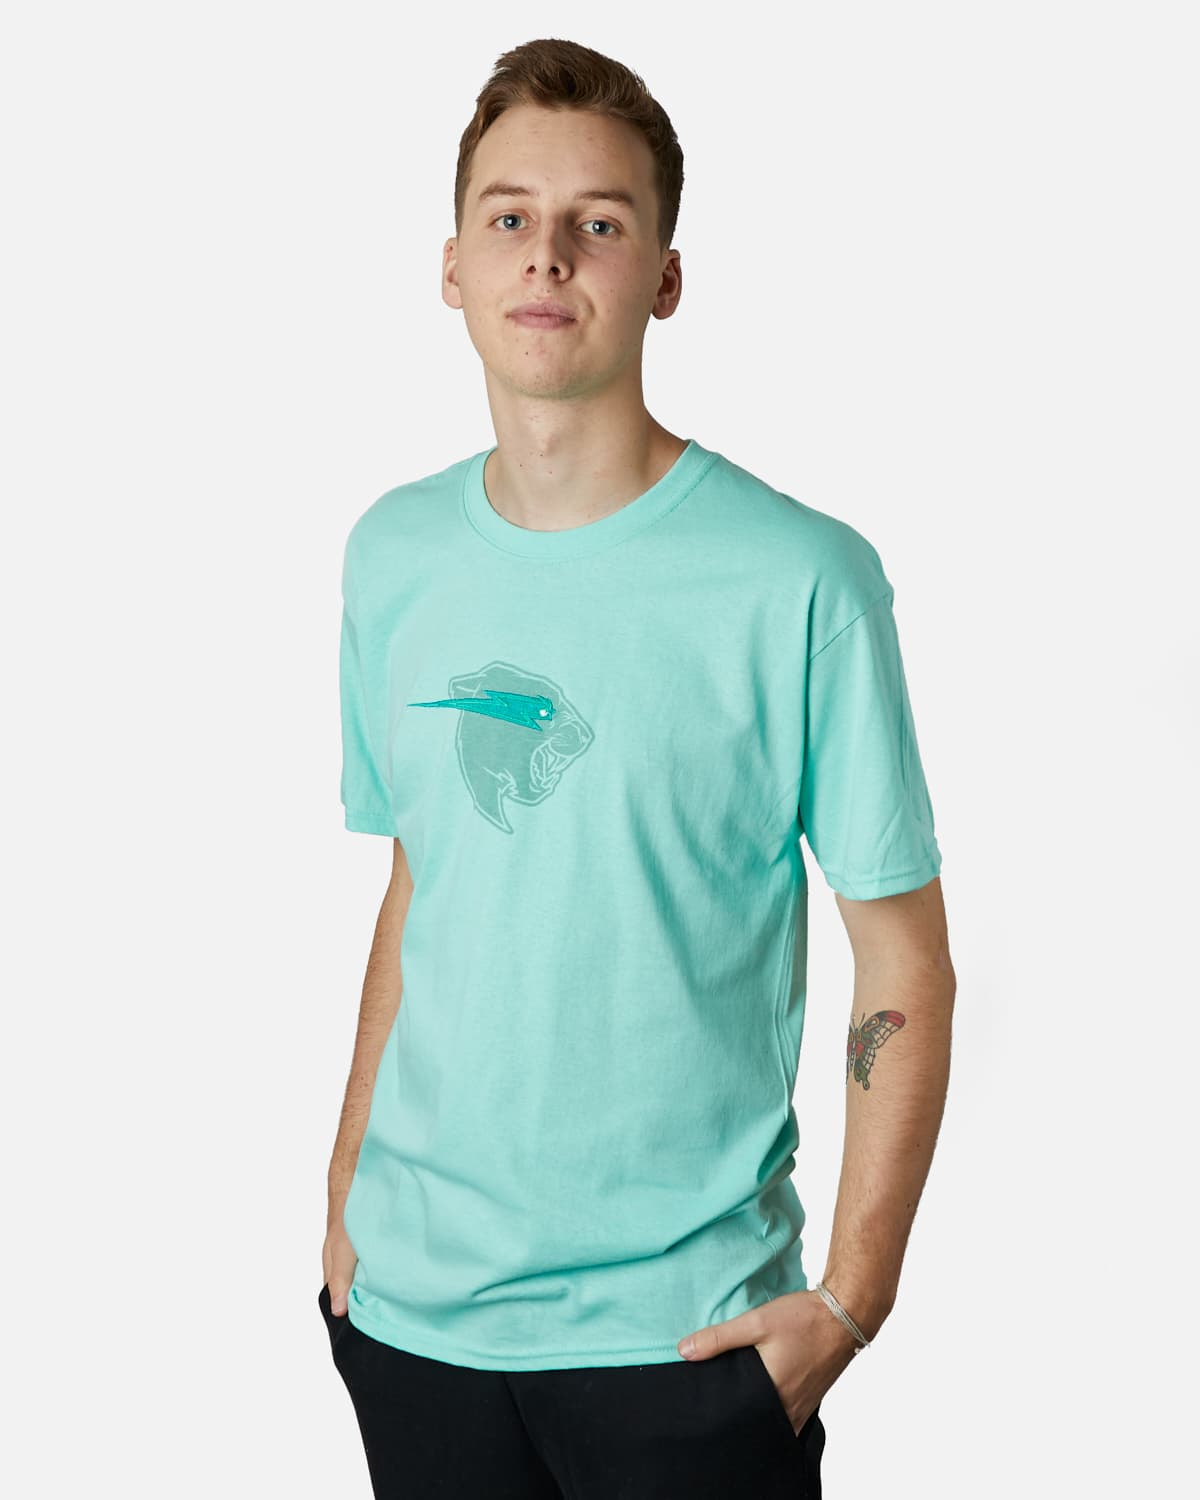 'Beast Head' Embroidery Tee - Mint